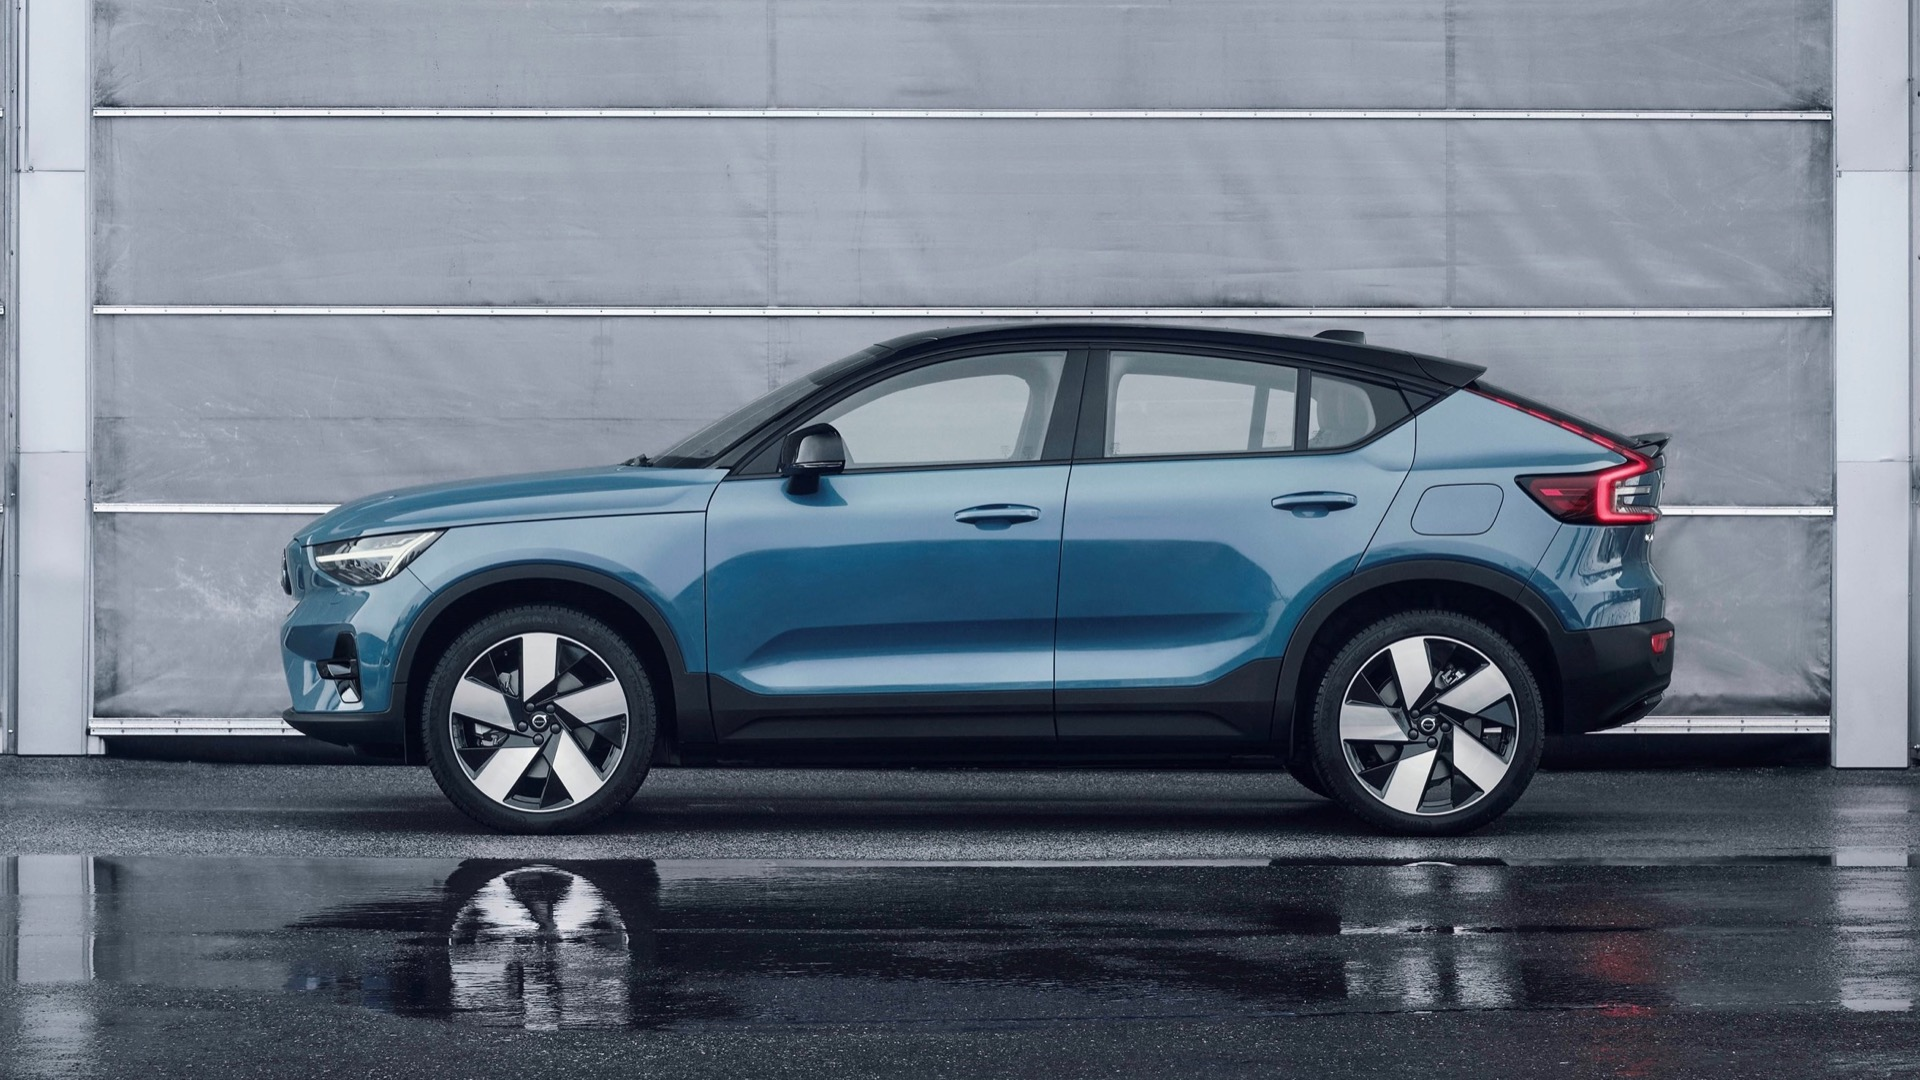 Sorento Hybrid and ID.4 reviewed, Taycan Cross Turismo and C40 Recharge revealed: The Week in Reverse